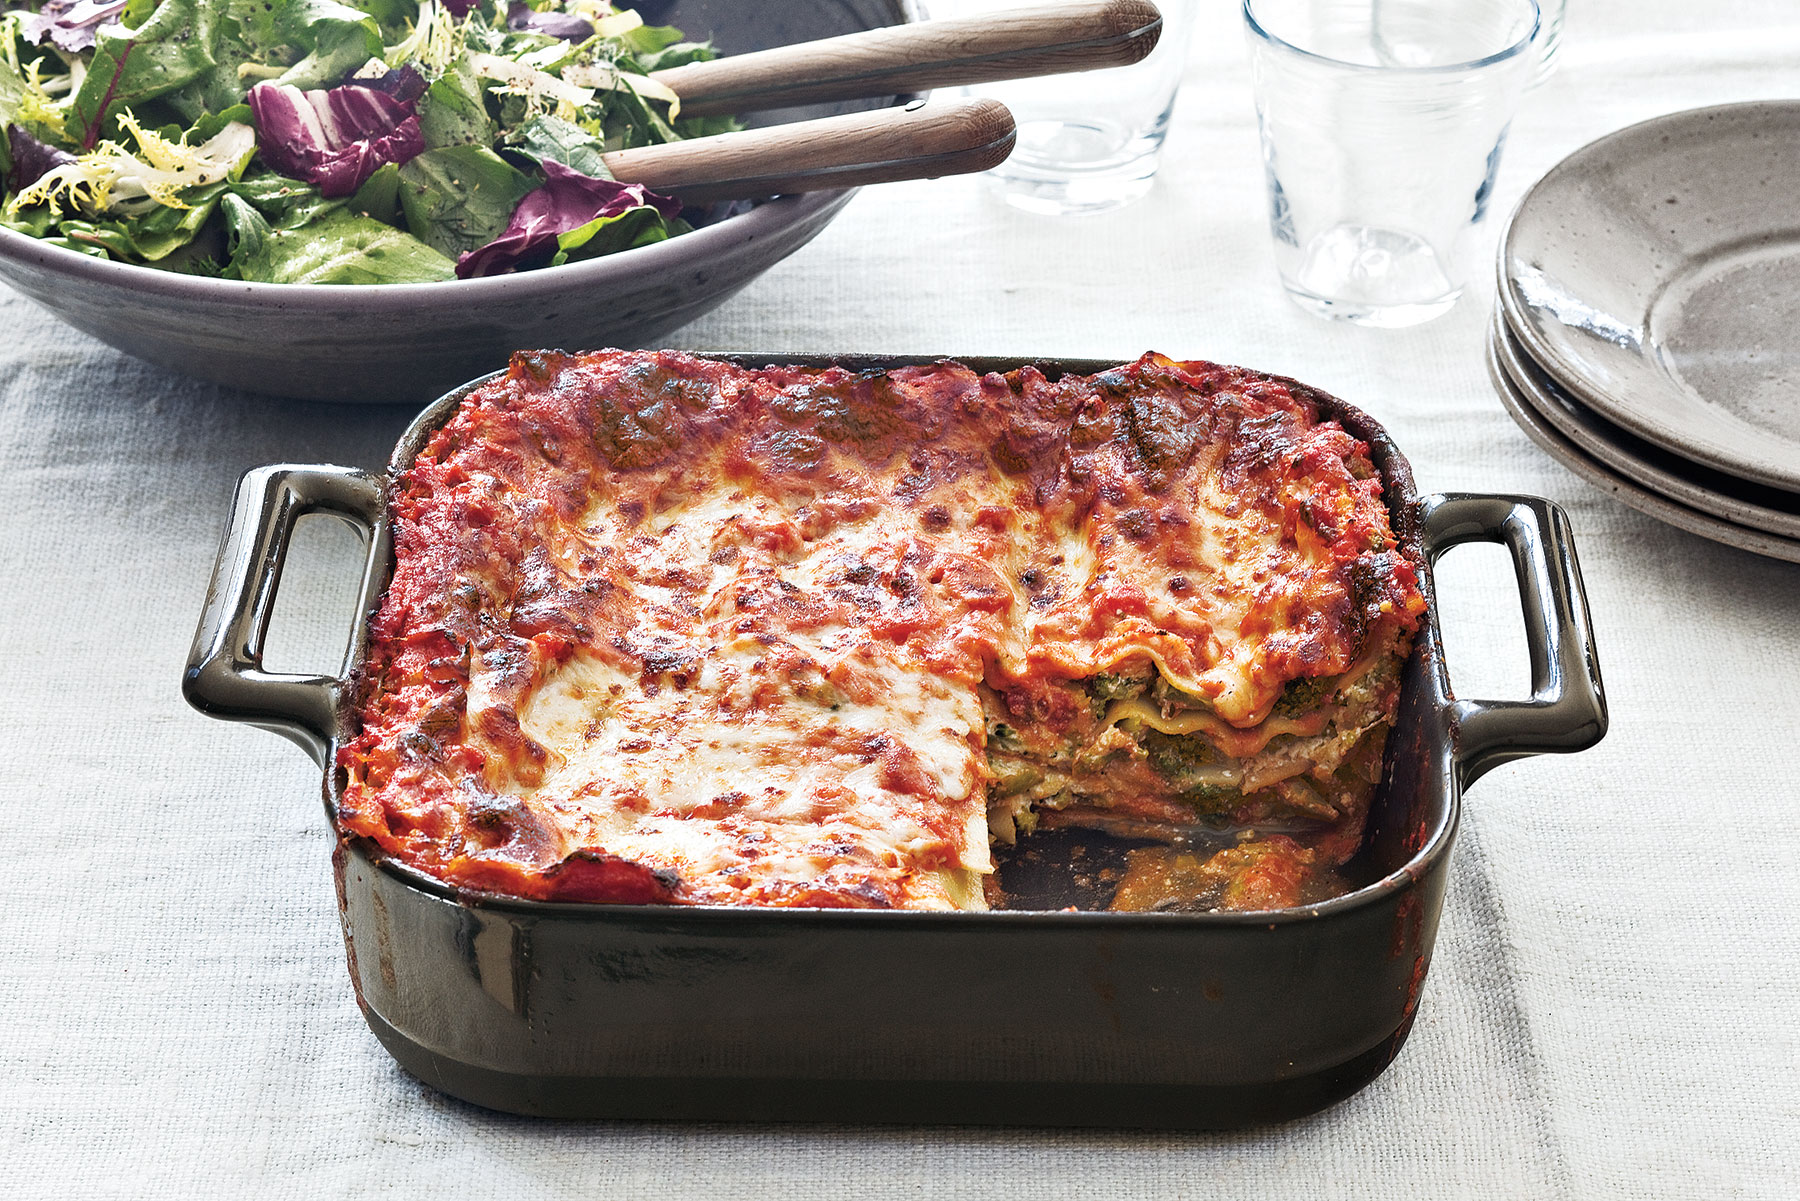 Broccoli and Three-Cheese Lasagna